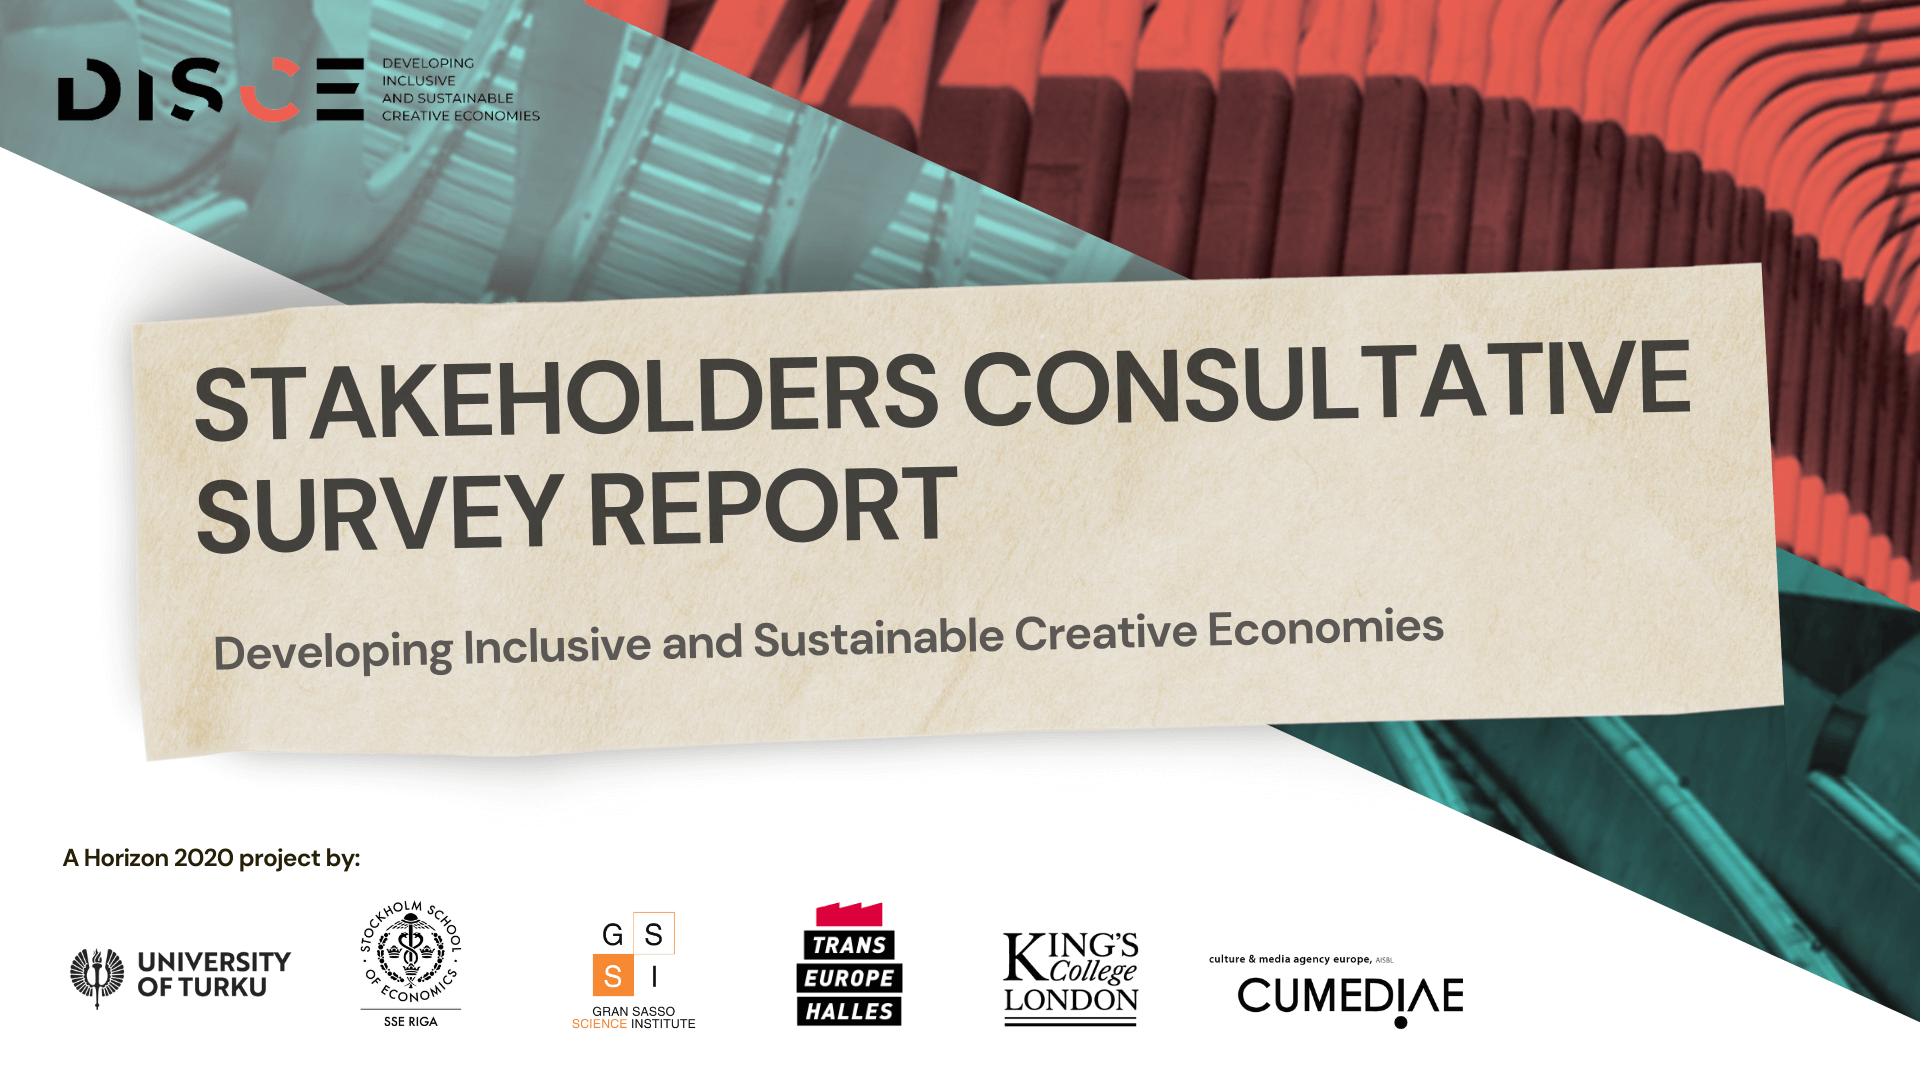 DISCE: Stakeholders Consultative Survey Results